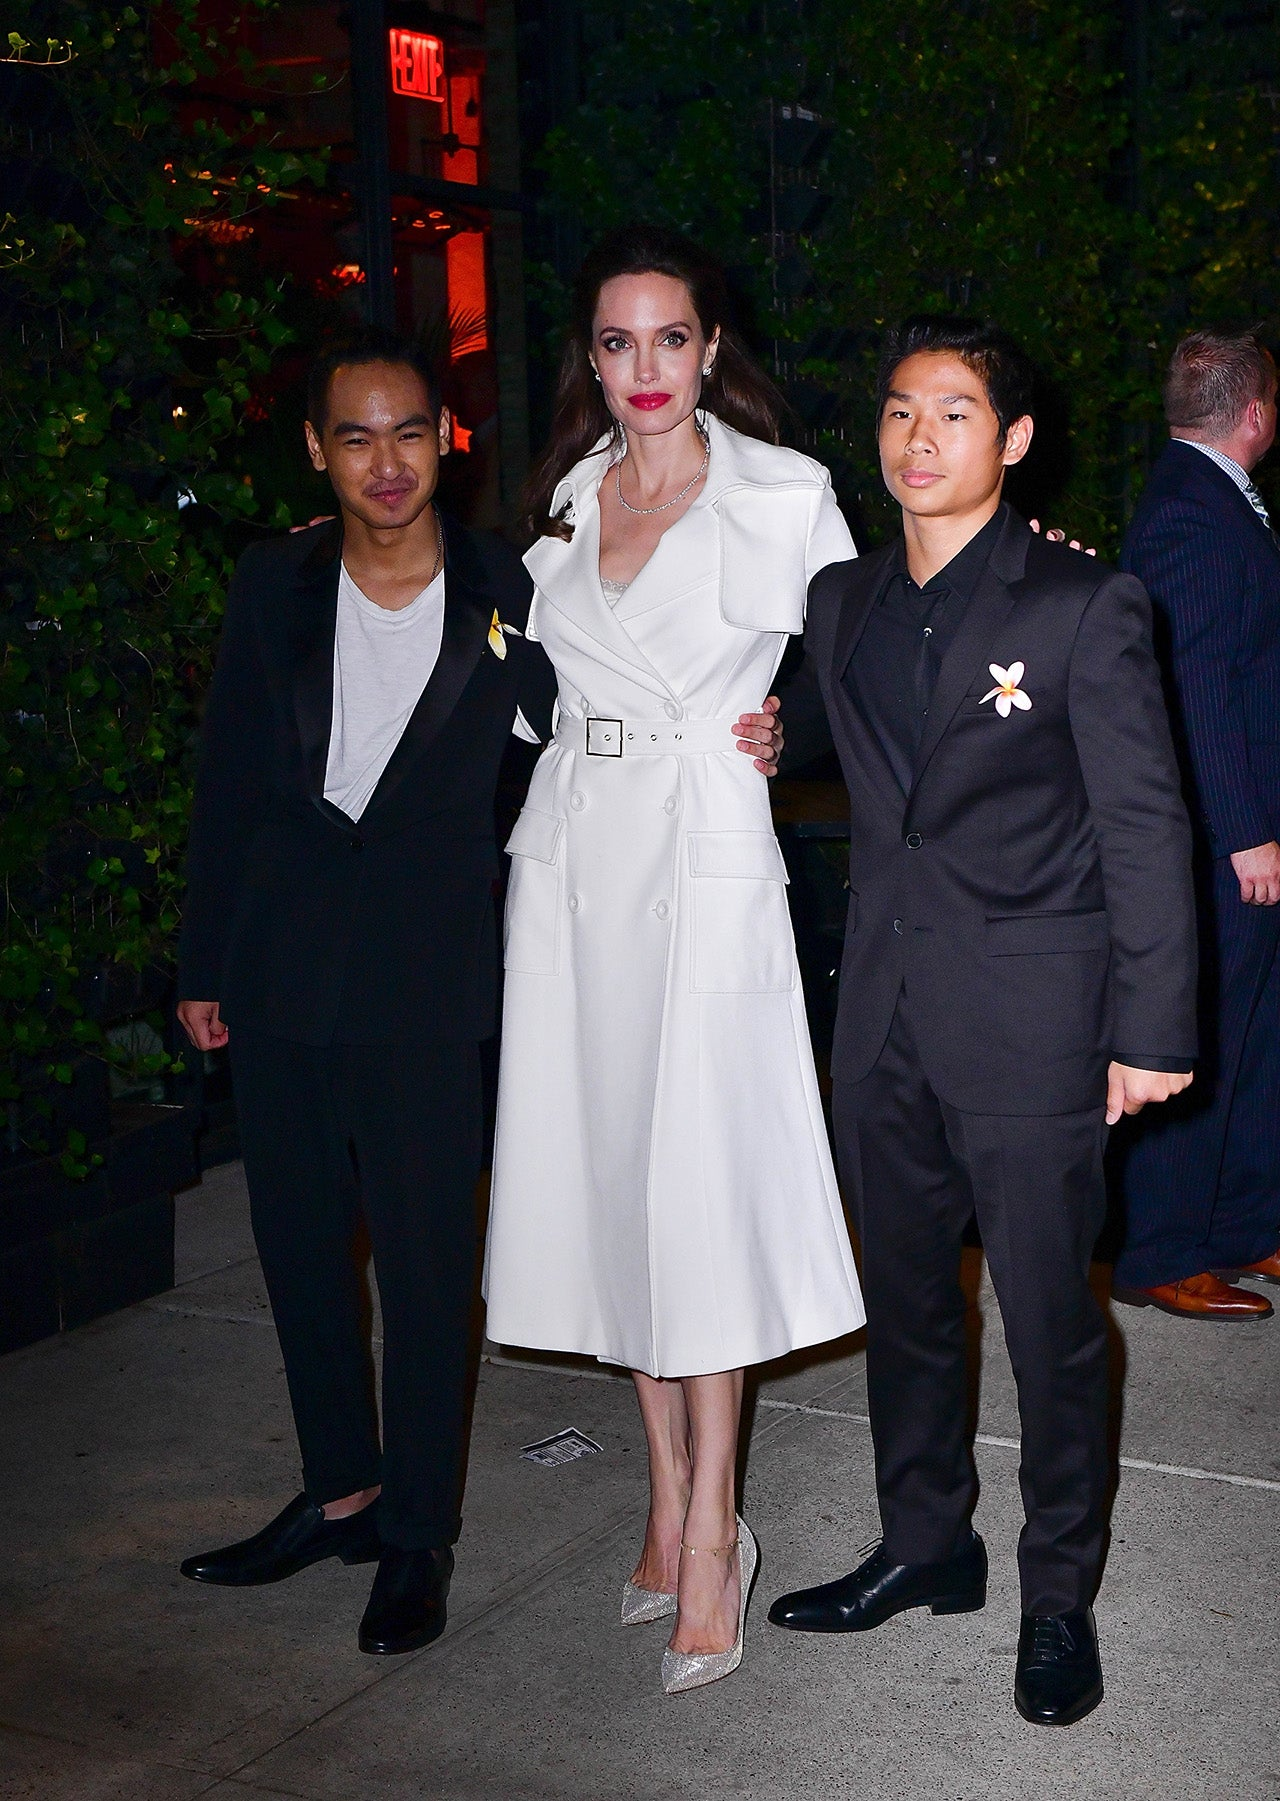 Angelina Jolie Poses With Sons Maddox And Pax At Film